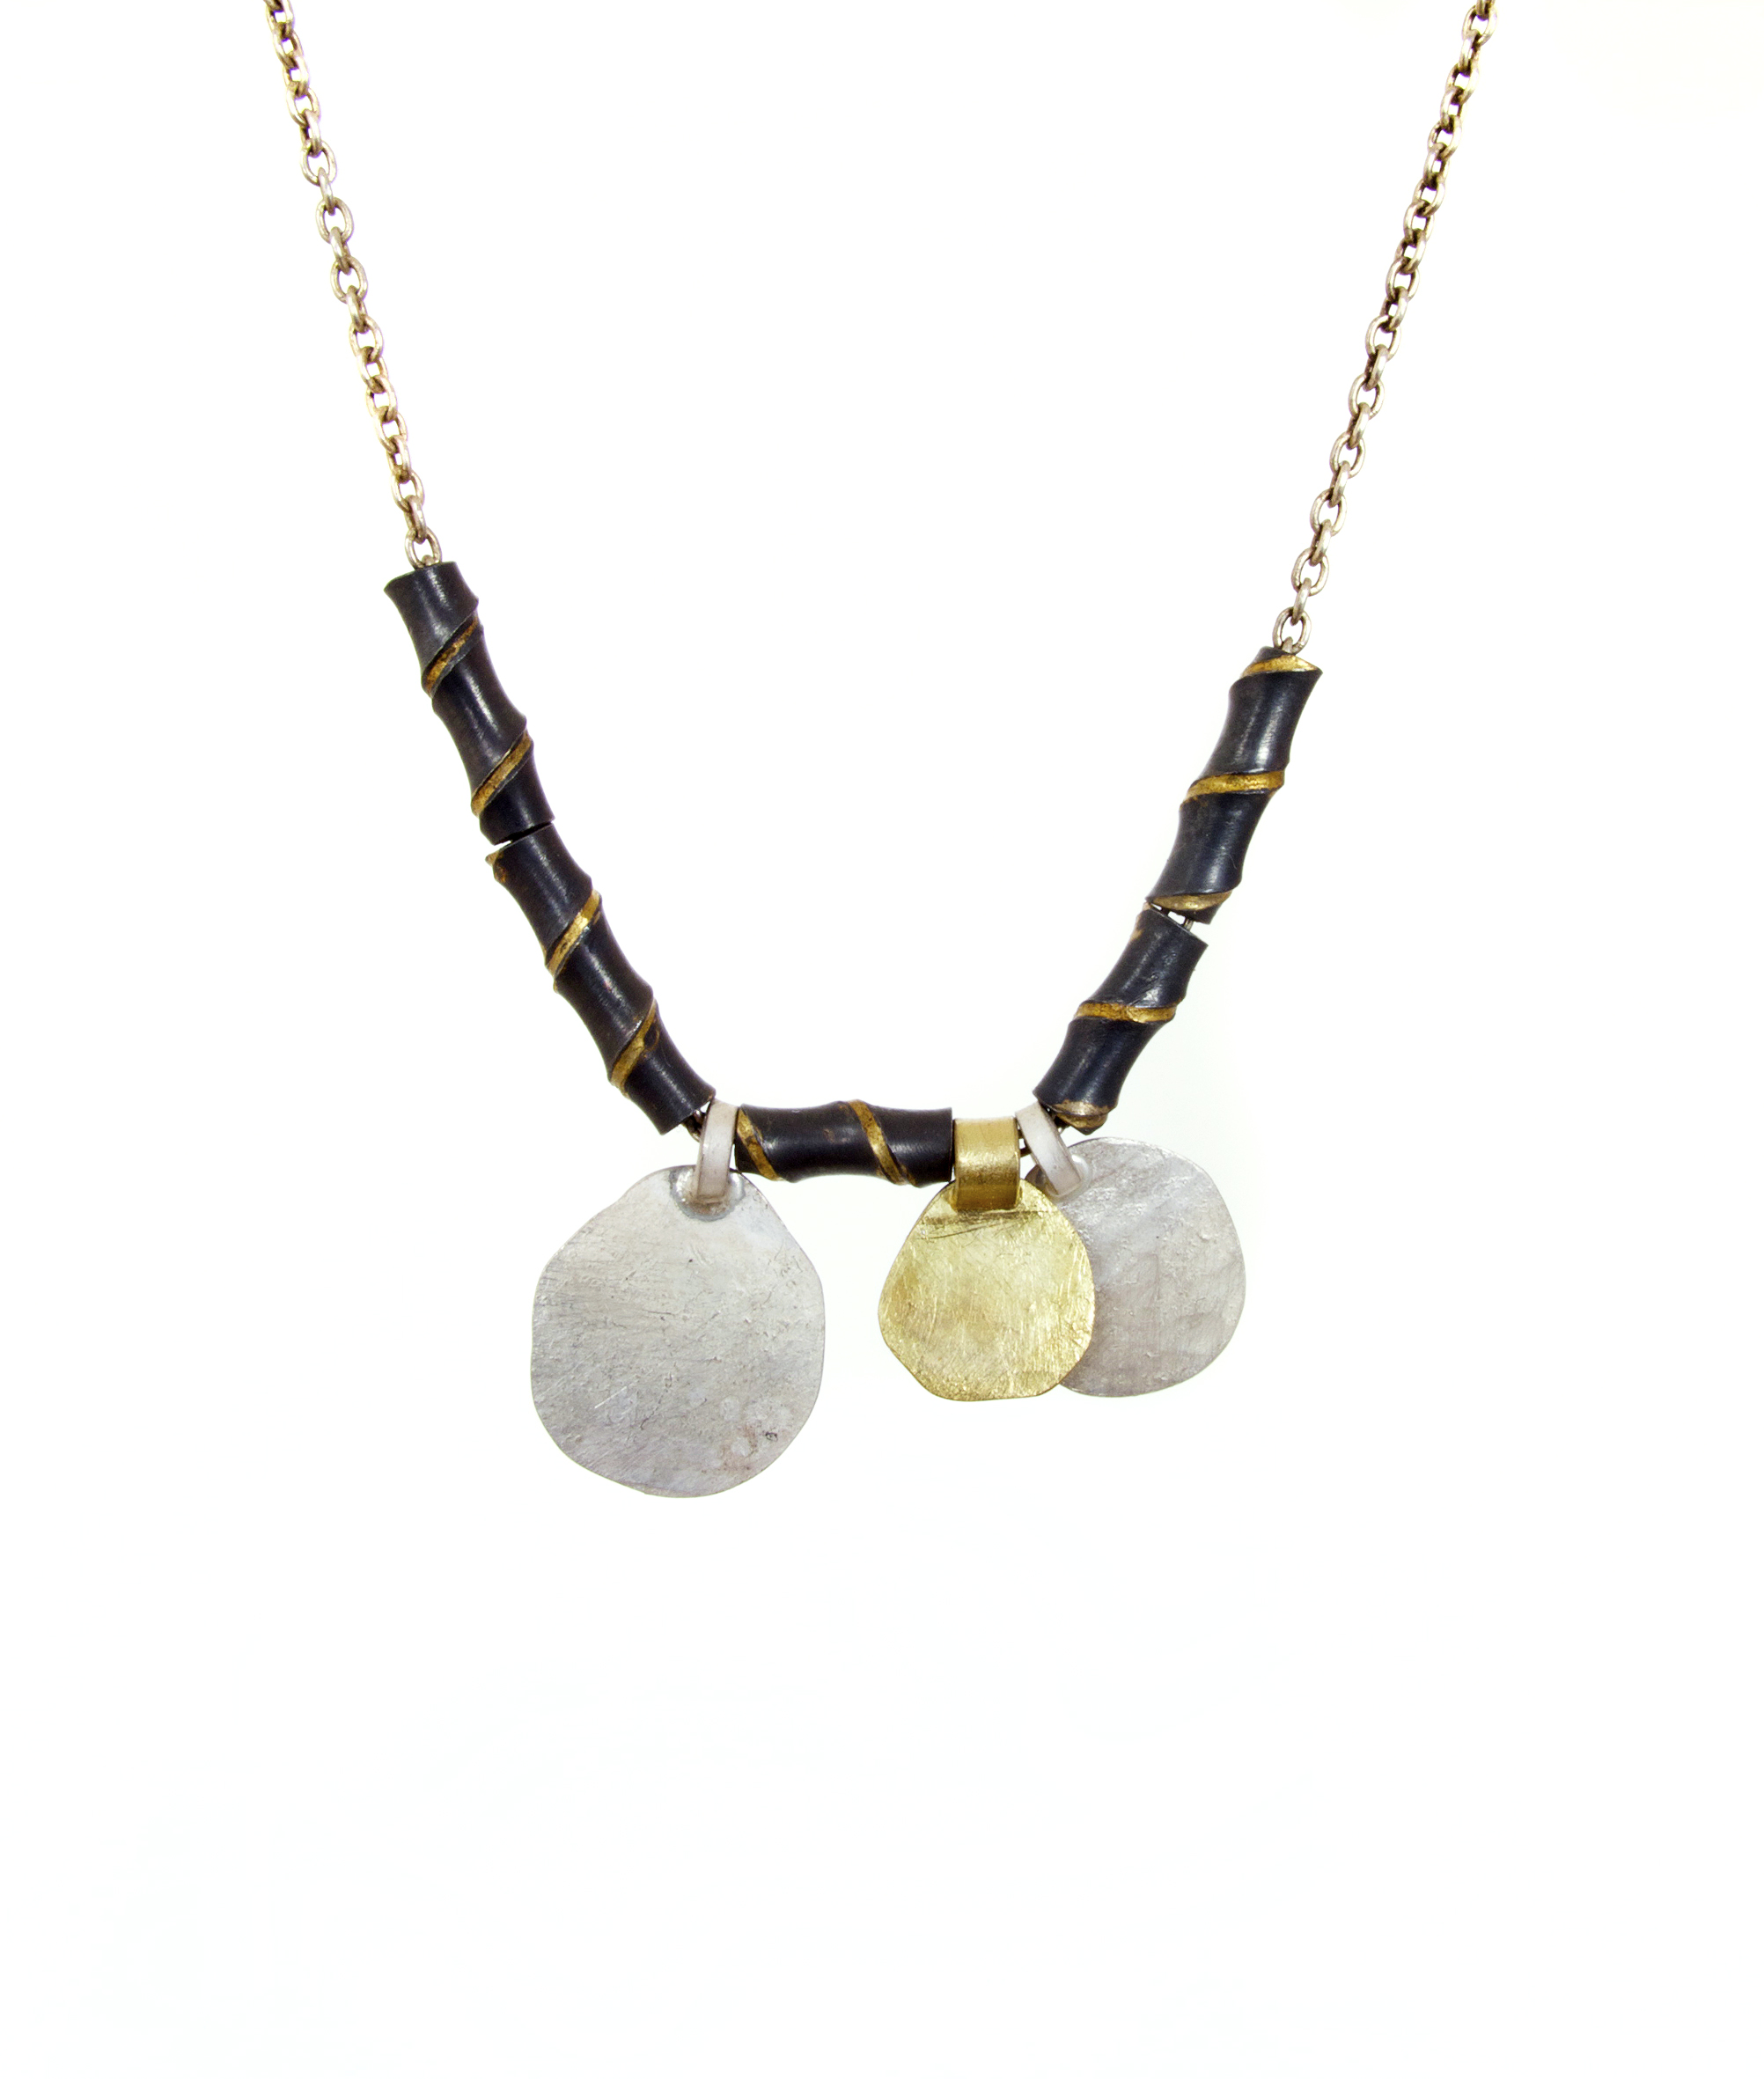 Disc & Tube beads, oxidised sterling silver & 18ct yellow gold